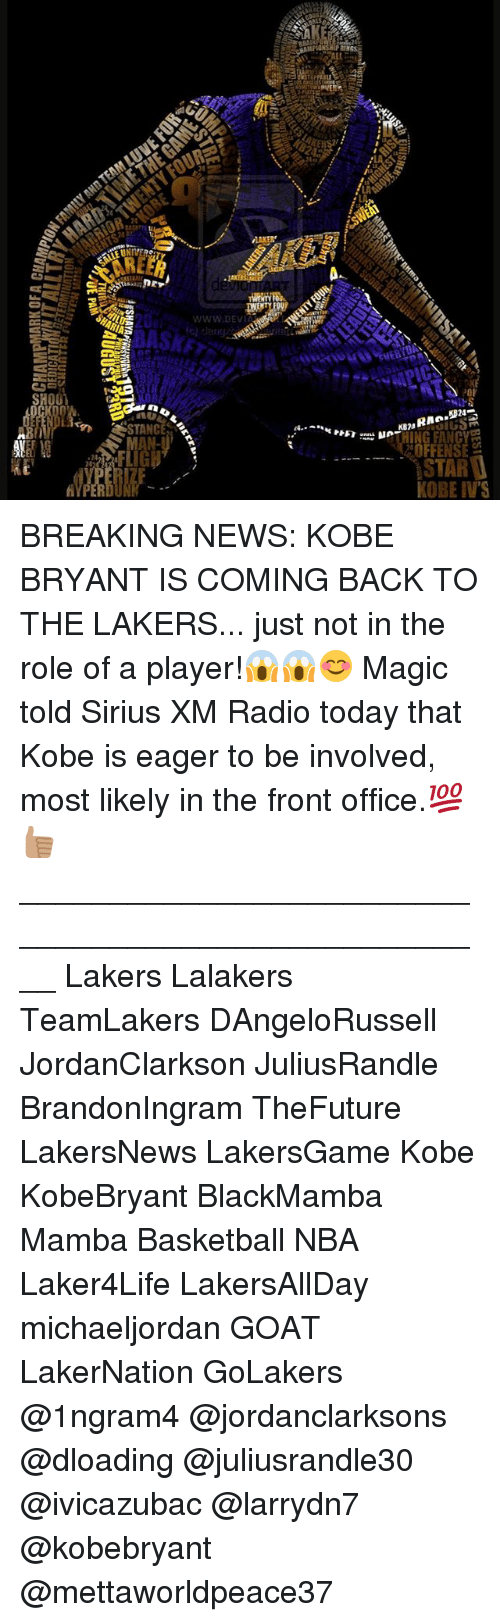 Basketball, Kobe Bryant, and Los Angeles Lakers: SHOO  HET  STANCE  WWWW DEV  SP24  OFFENSE  START  KOBE IV S BREAKING NEWS: KOBE BRYANT IS COMING BACK TO THE LAKERS... just not in the role of a player!😱😱😊 Magic told Sirius XM Radio today that Kobe is eager to be involved, most likely in the front office.💯👍🏽 ____________________________________________________ Lakers Lalakers TeamLakers DAngeloRussell JordanClarkson JuliusRandle BrandonIngram TheFuture LakersNews LakersGame Kobe KobeBryant BlackMamba Mamba Basketball NBA Laker4Life LakersAllDay michaeljordan GOAT LakerNation GoLakers @1ngram4 @jordanclarksons @dloading @juliusrandle30 @ivicazubac @larrydn7 @kobebryant @mettaworldpeace37